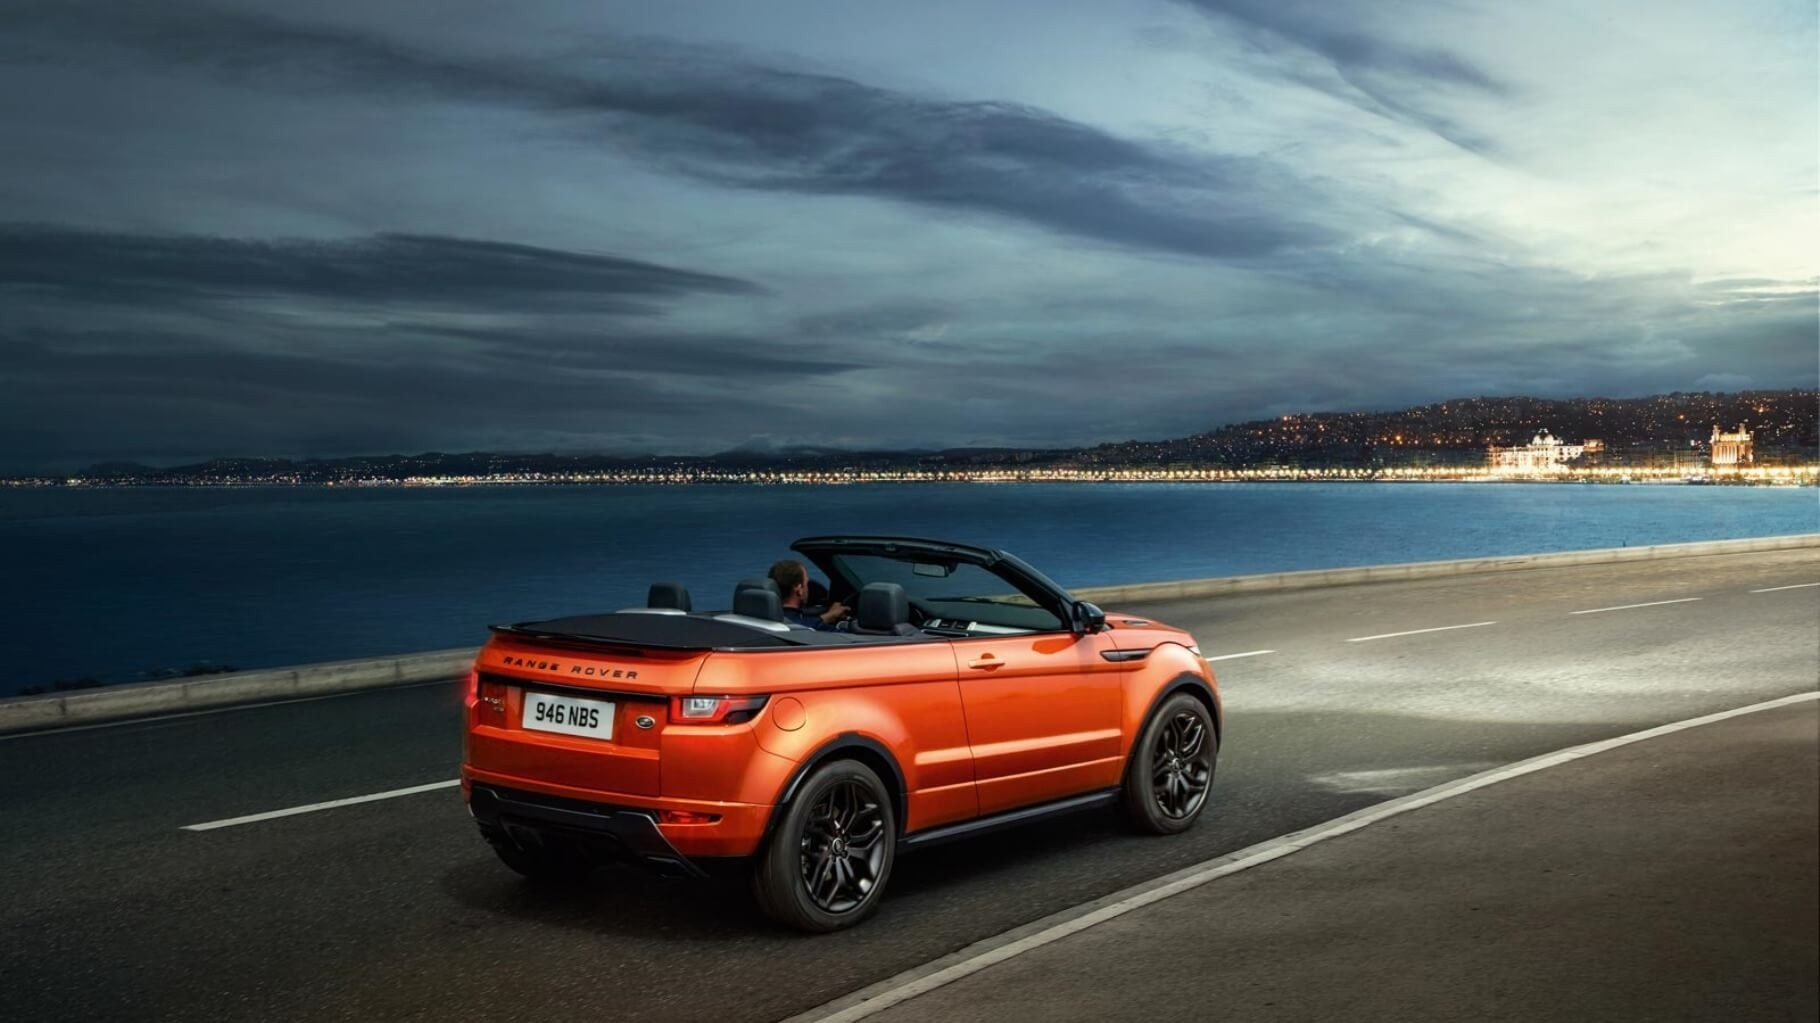 2017 Land Rover Range Rover Evoque Convertible driving on highway next to ocean